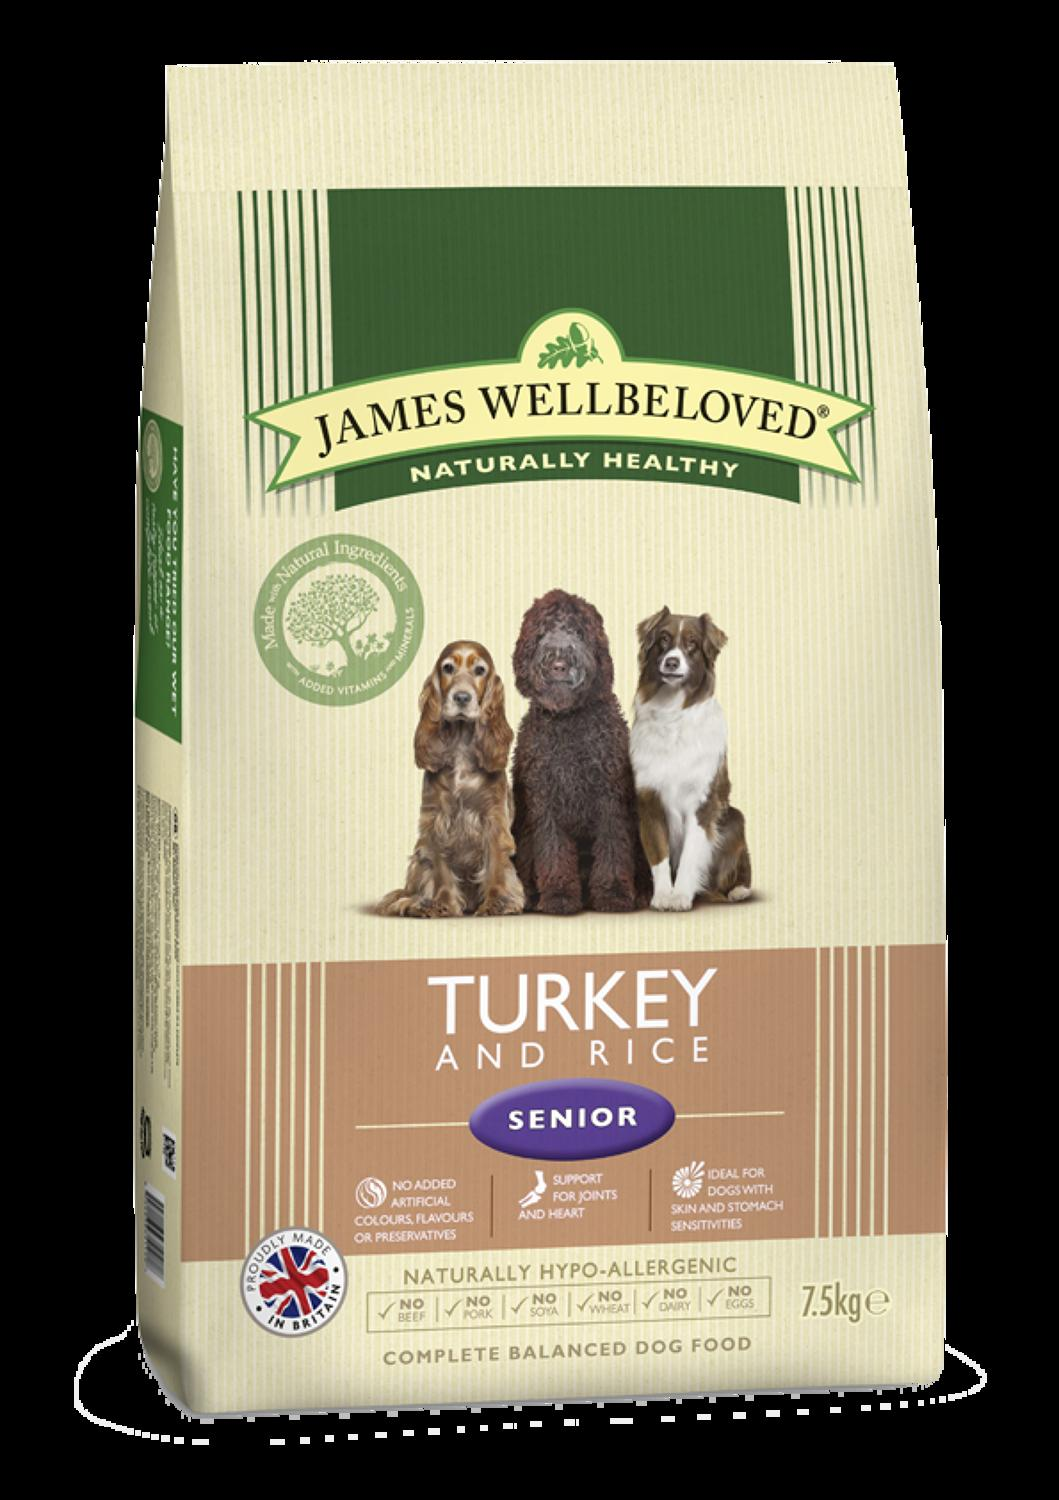 James Wellbeloved Senior Turkey & Rice 7.5kg